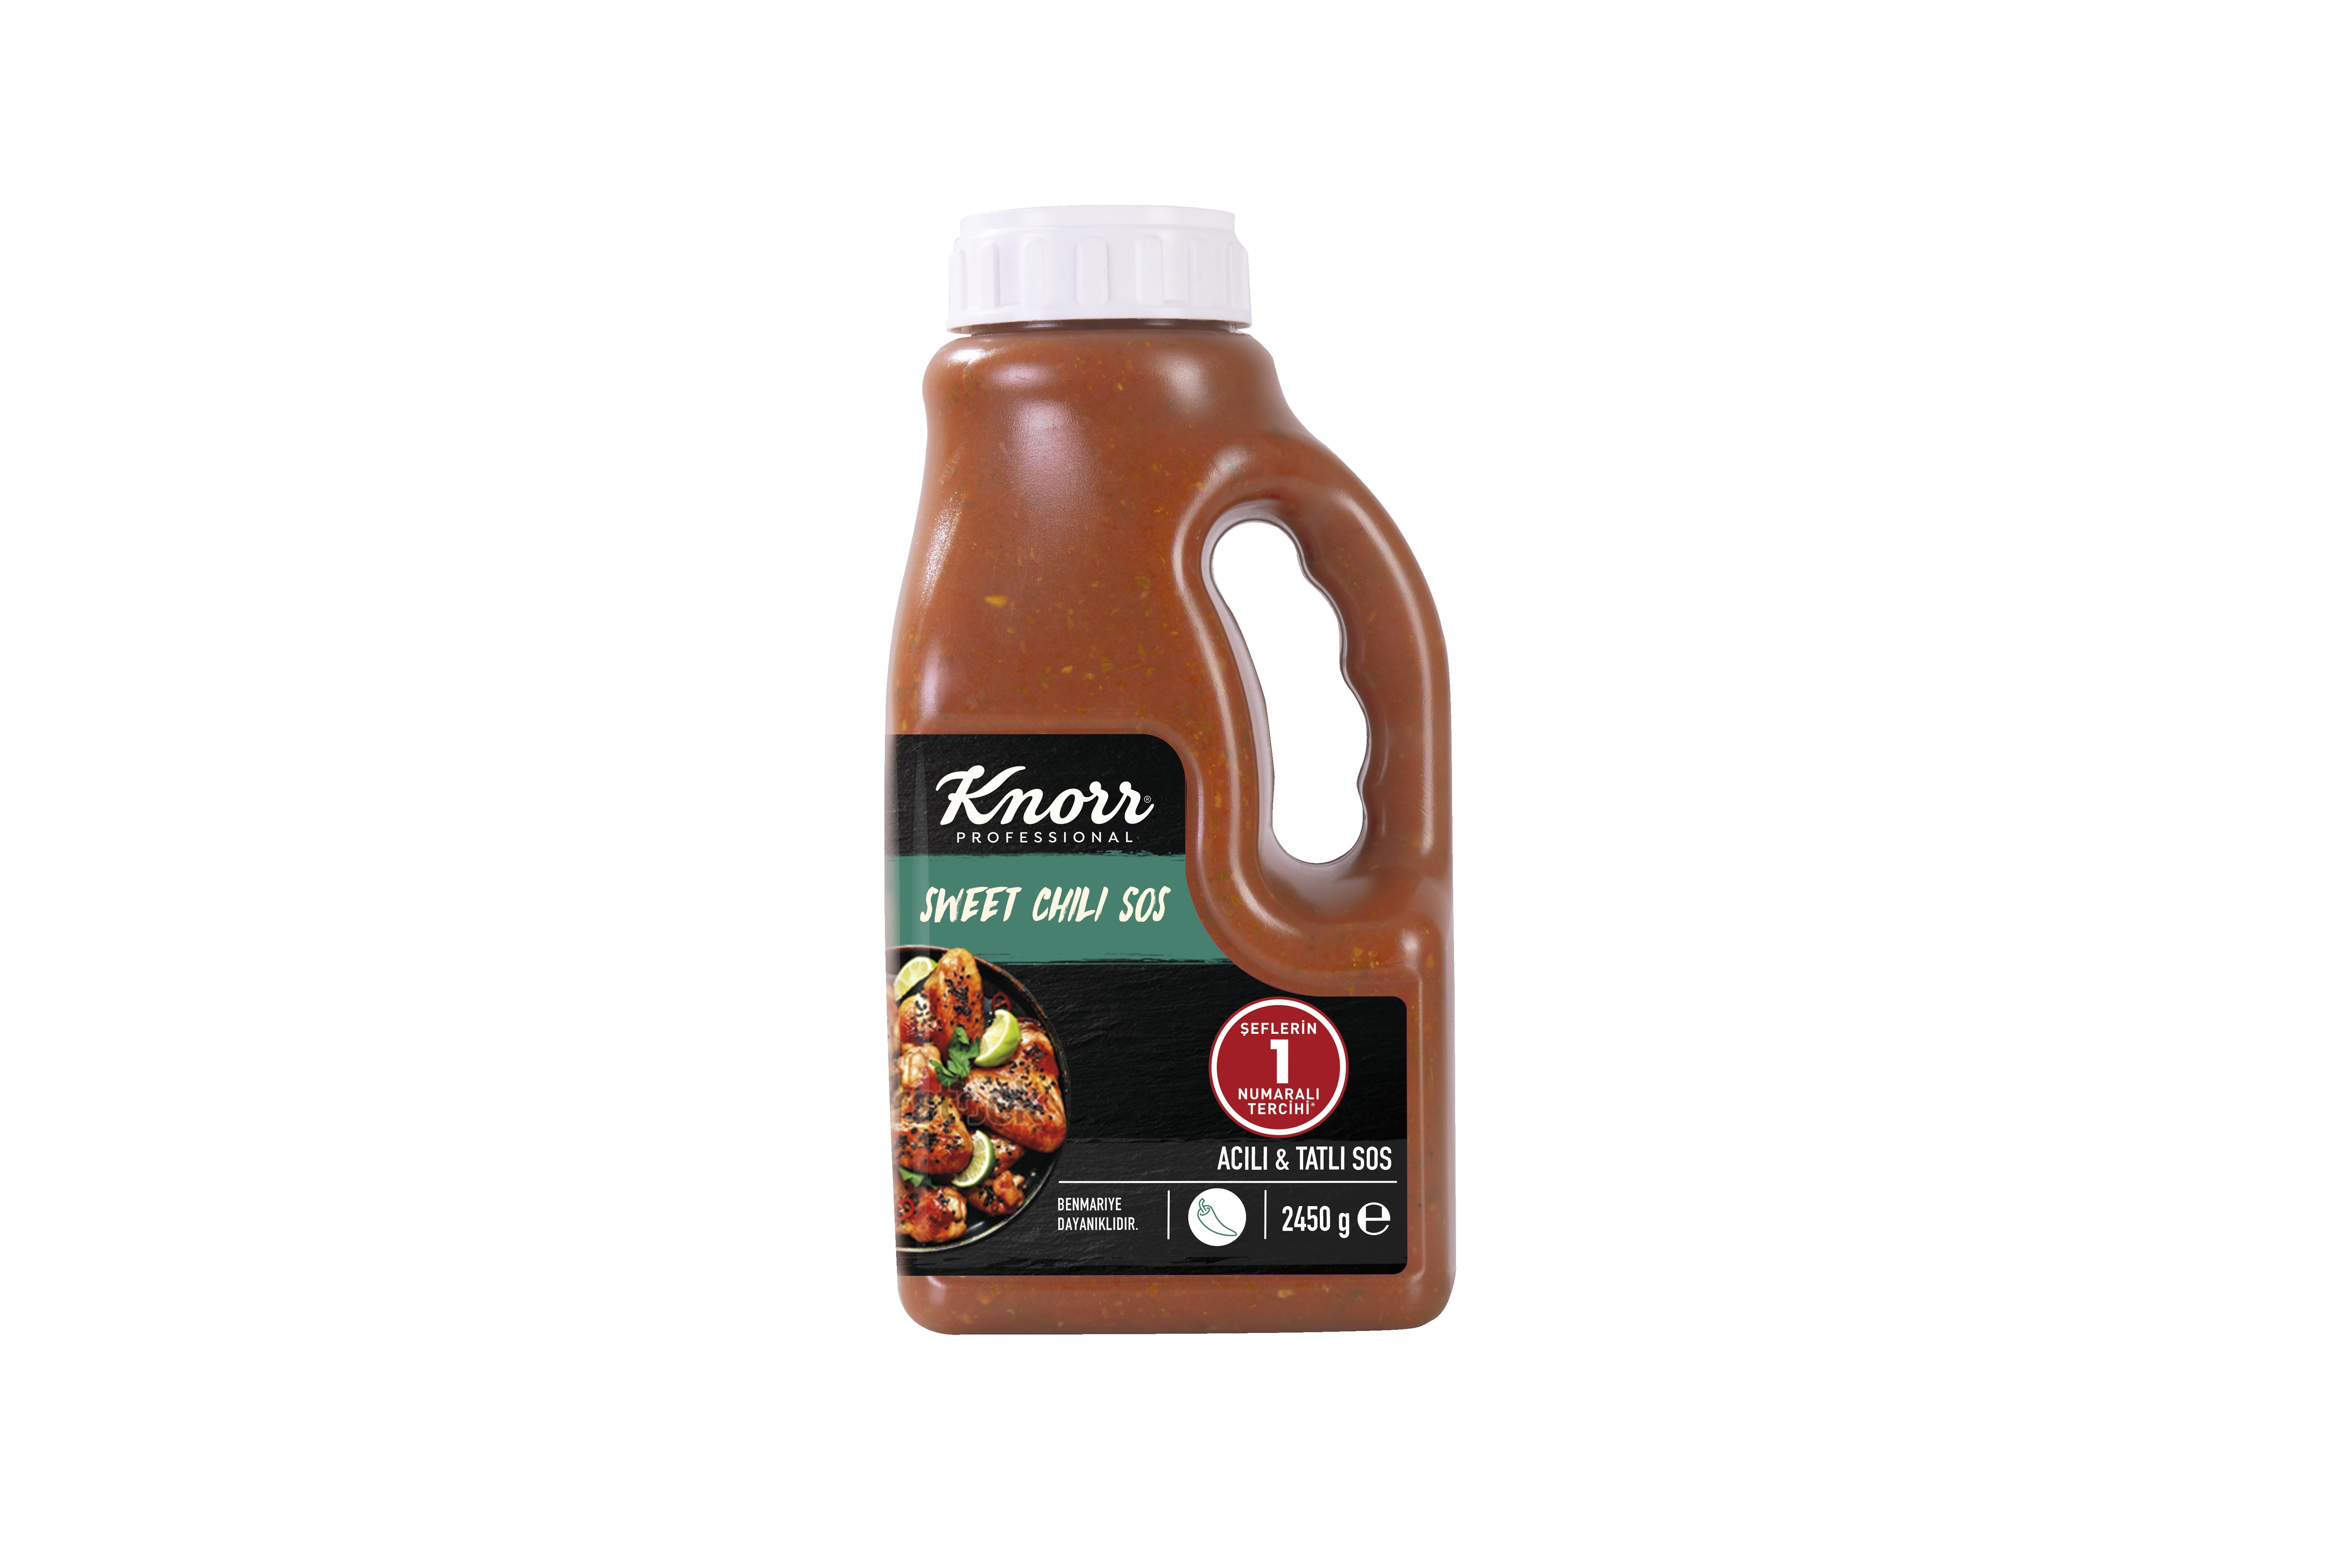 Knorr Sweet Chili Sos 2485 ml -